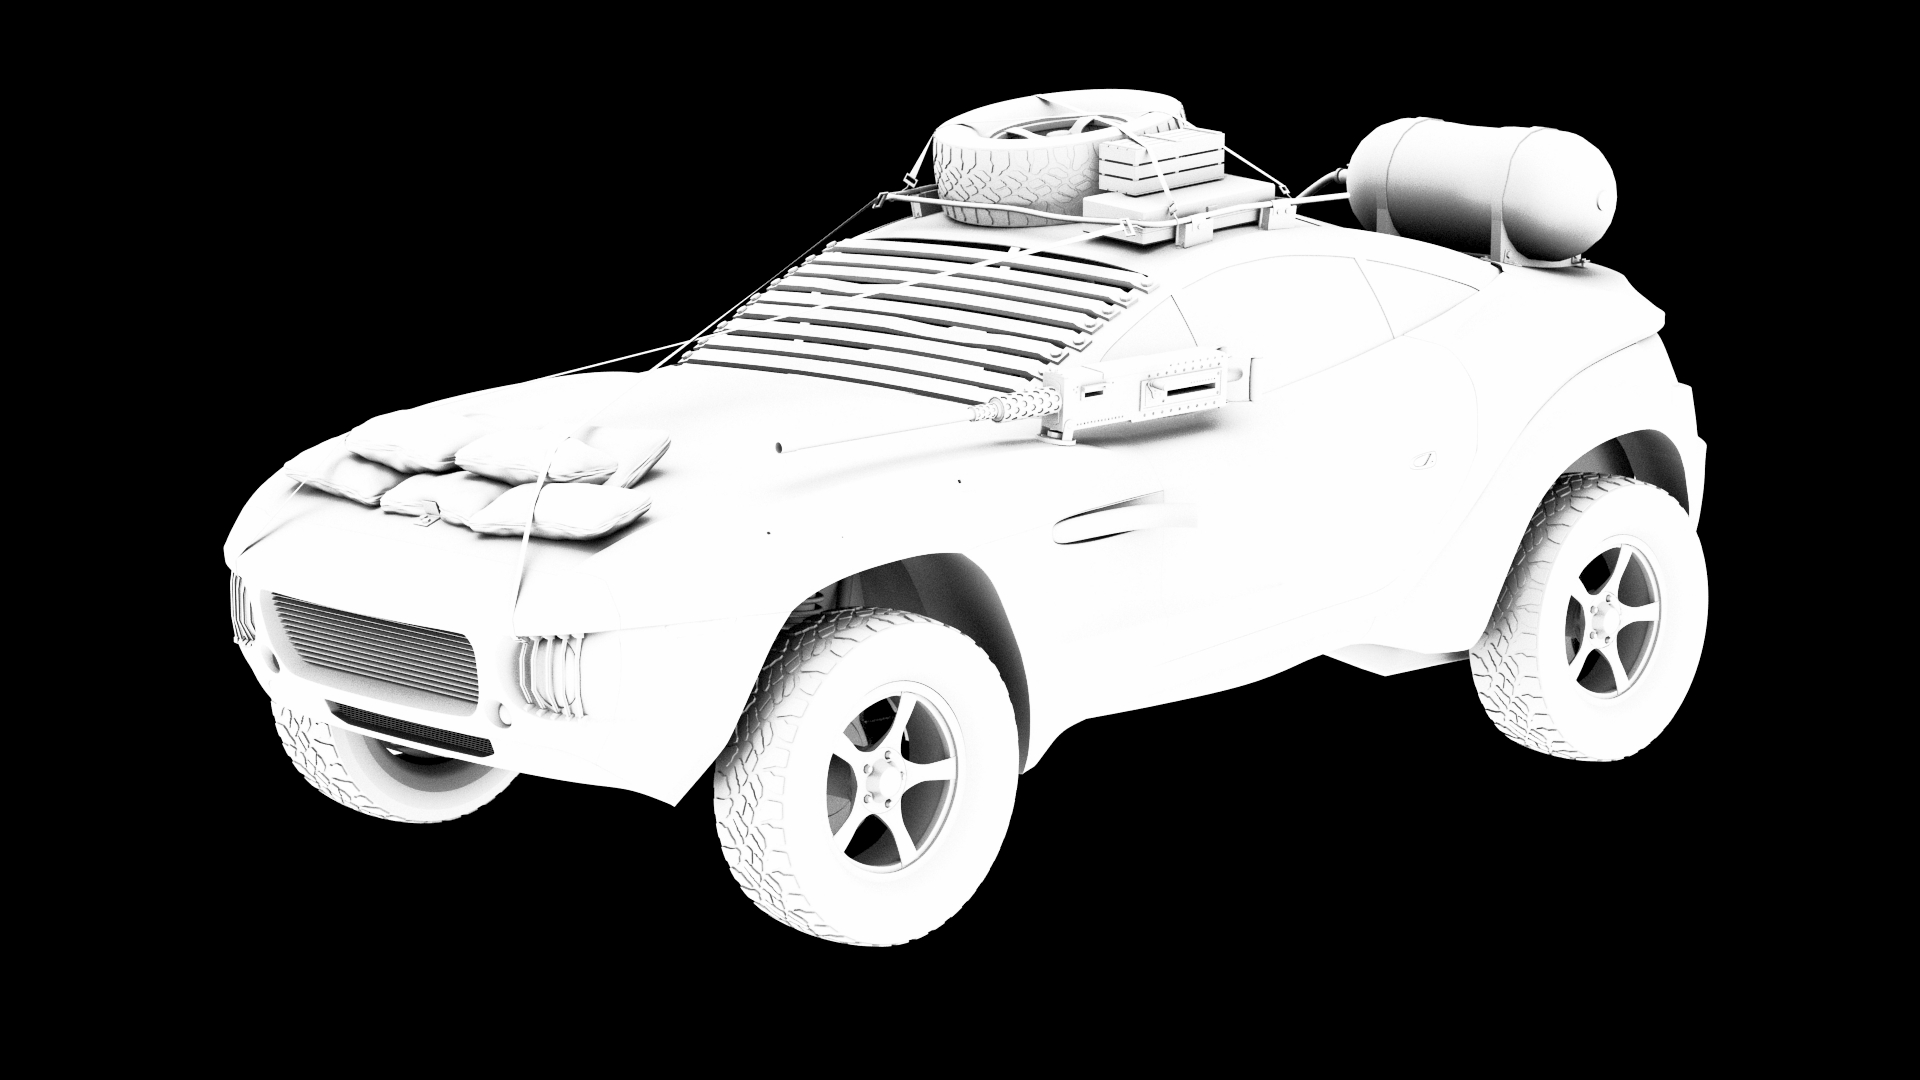 Madmax 3D model - Ambient Occlusion - MadMax